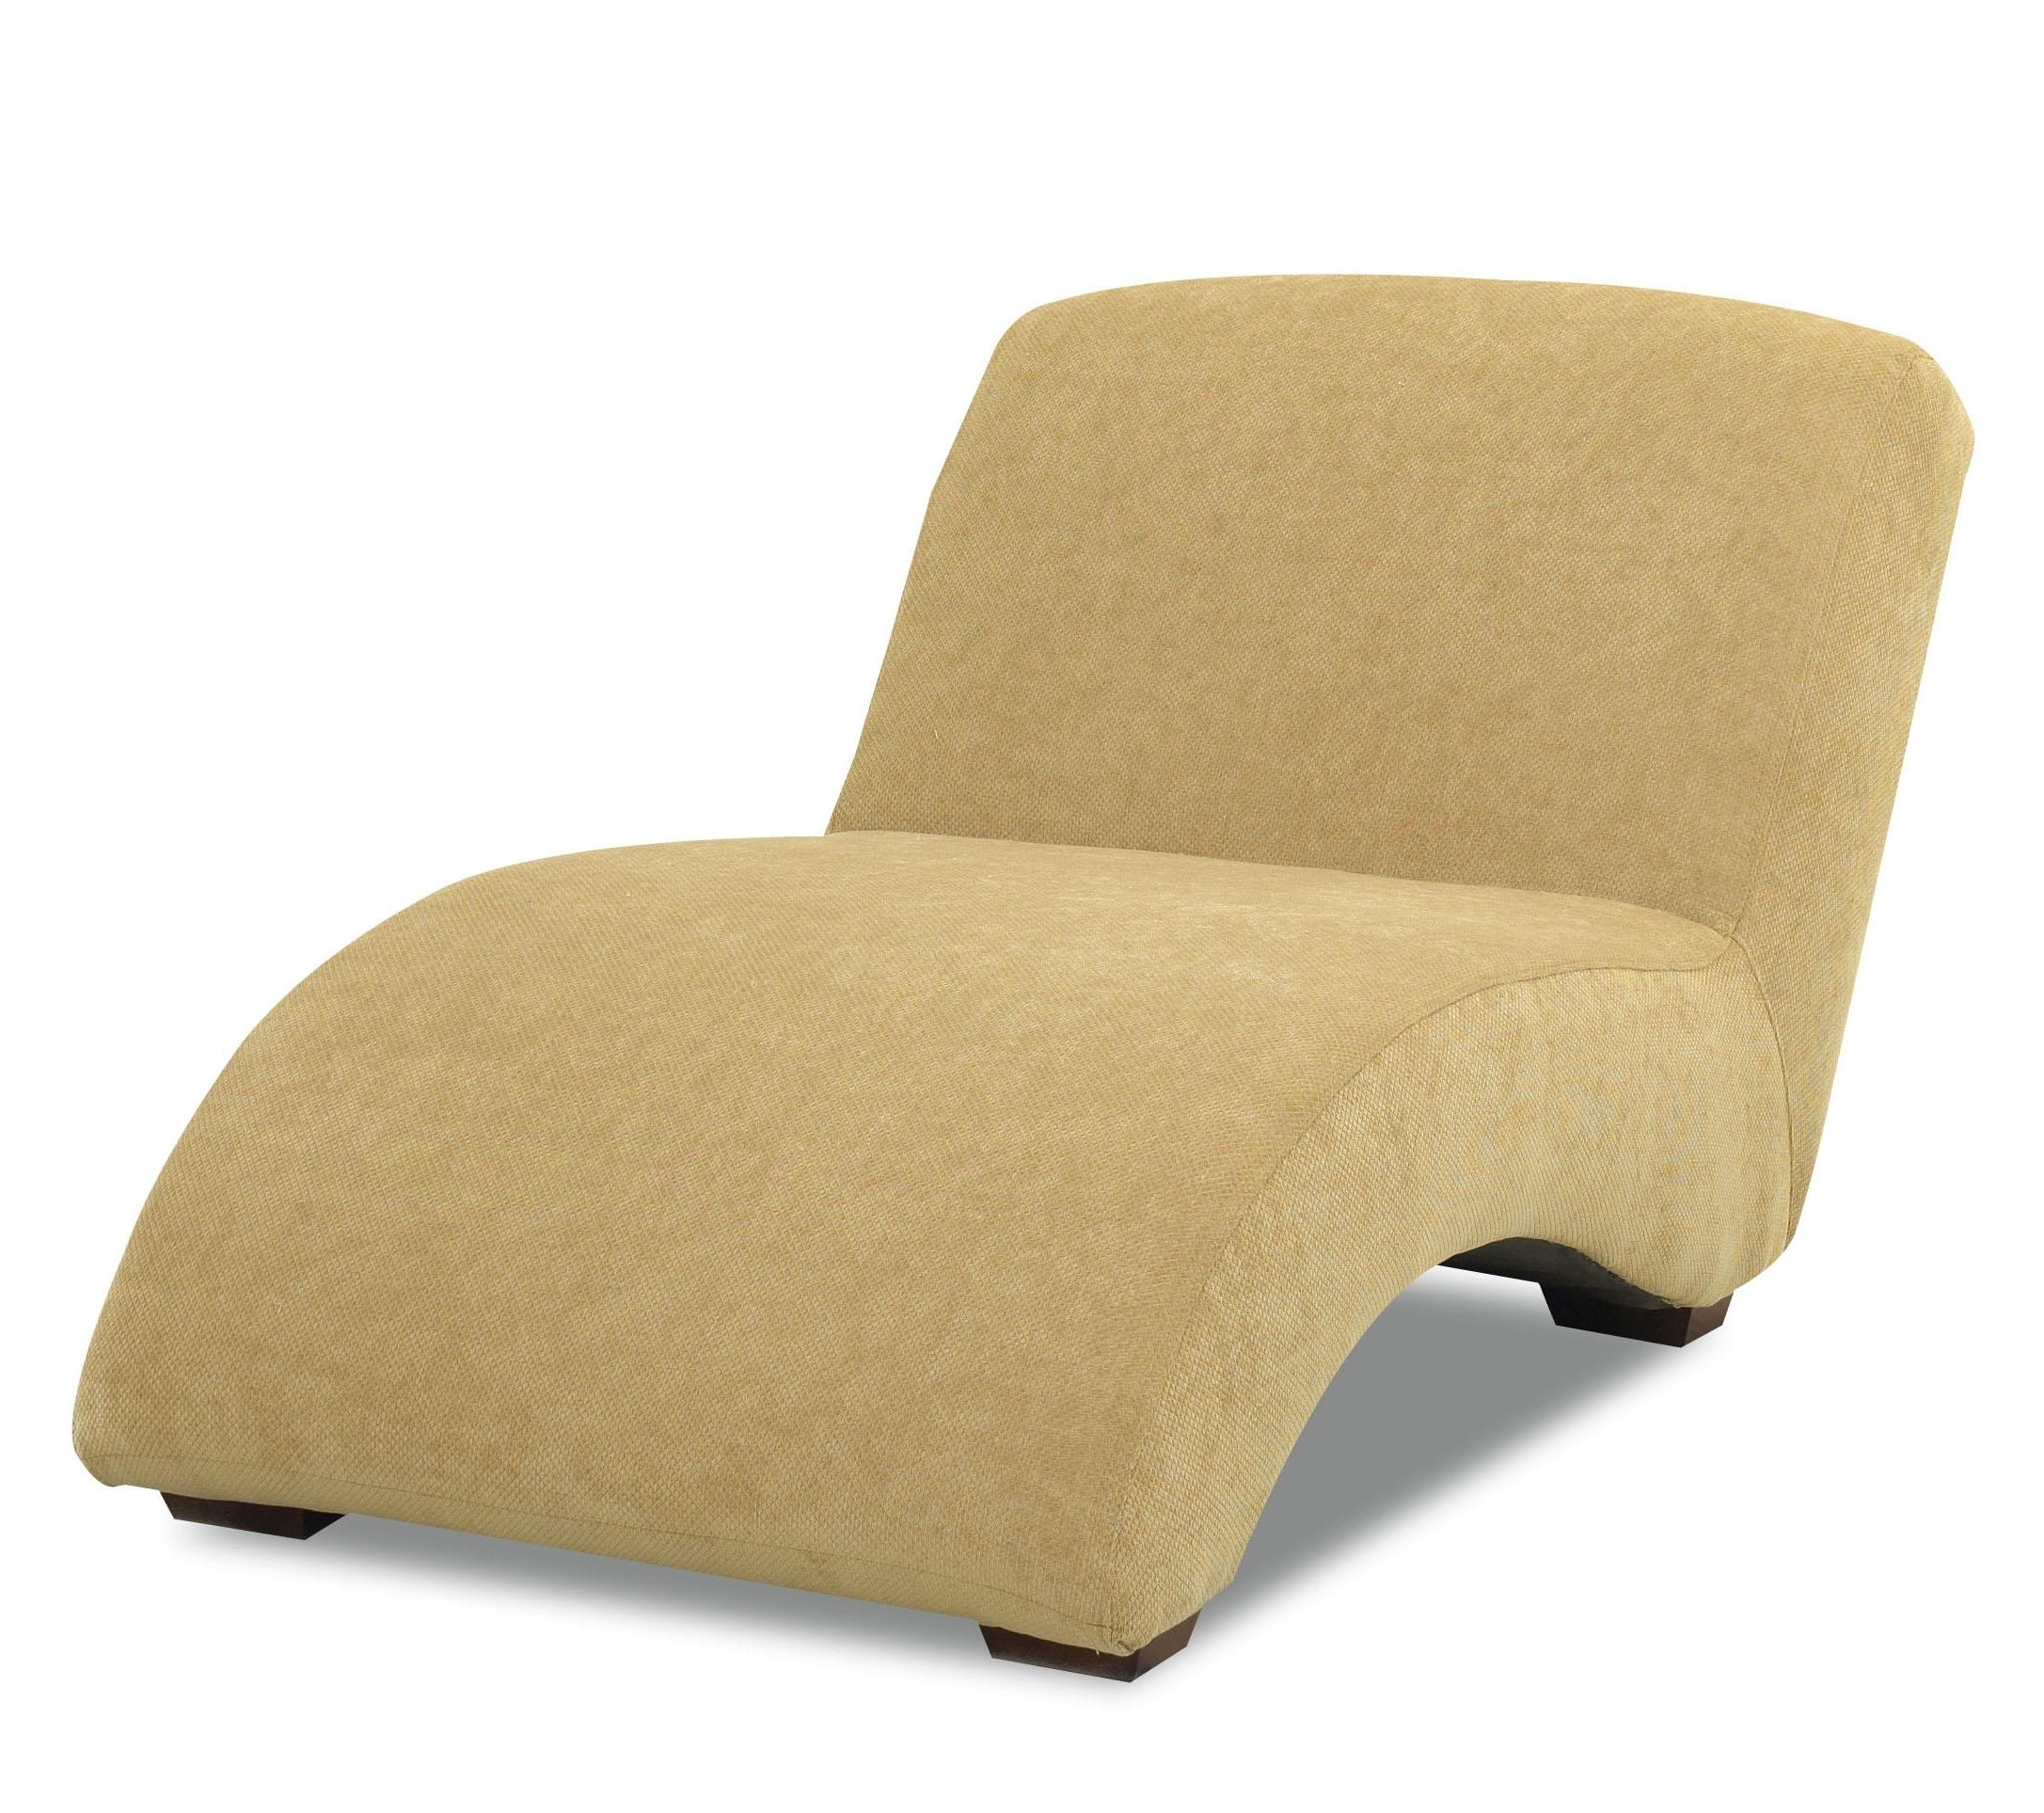 Most Popular Klaussner Chairs And Accents Oversized Celebration Armless Chaise Throughout Armless Chaise Lounges (View 12 of 15)